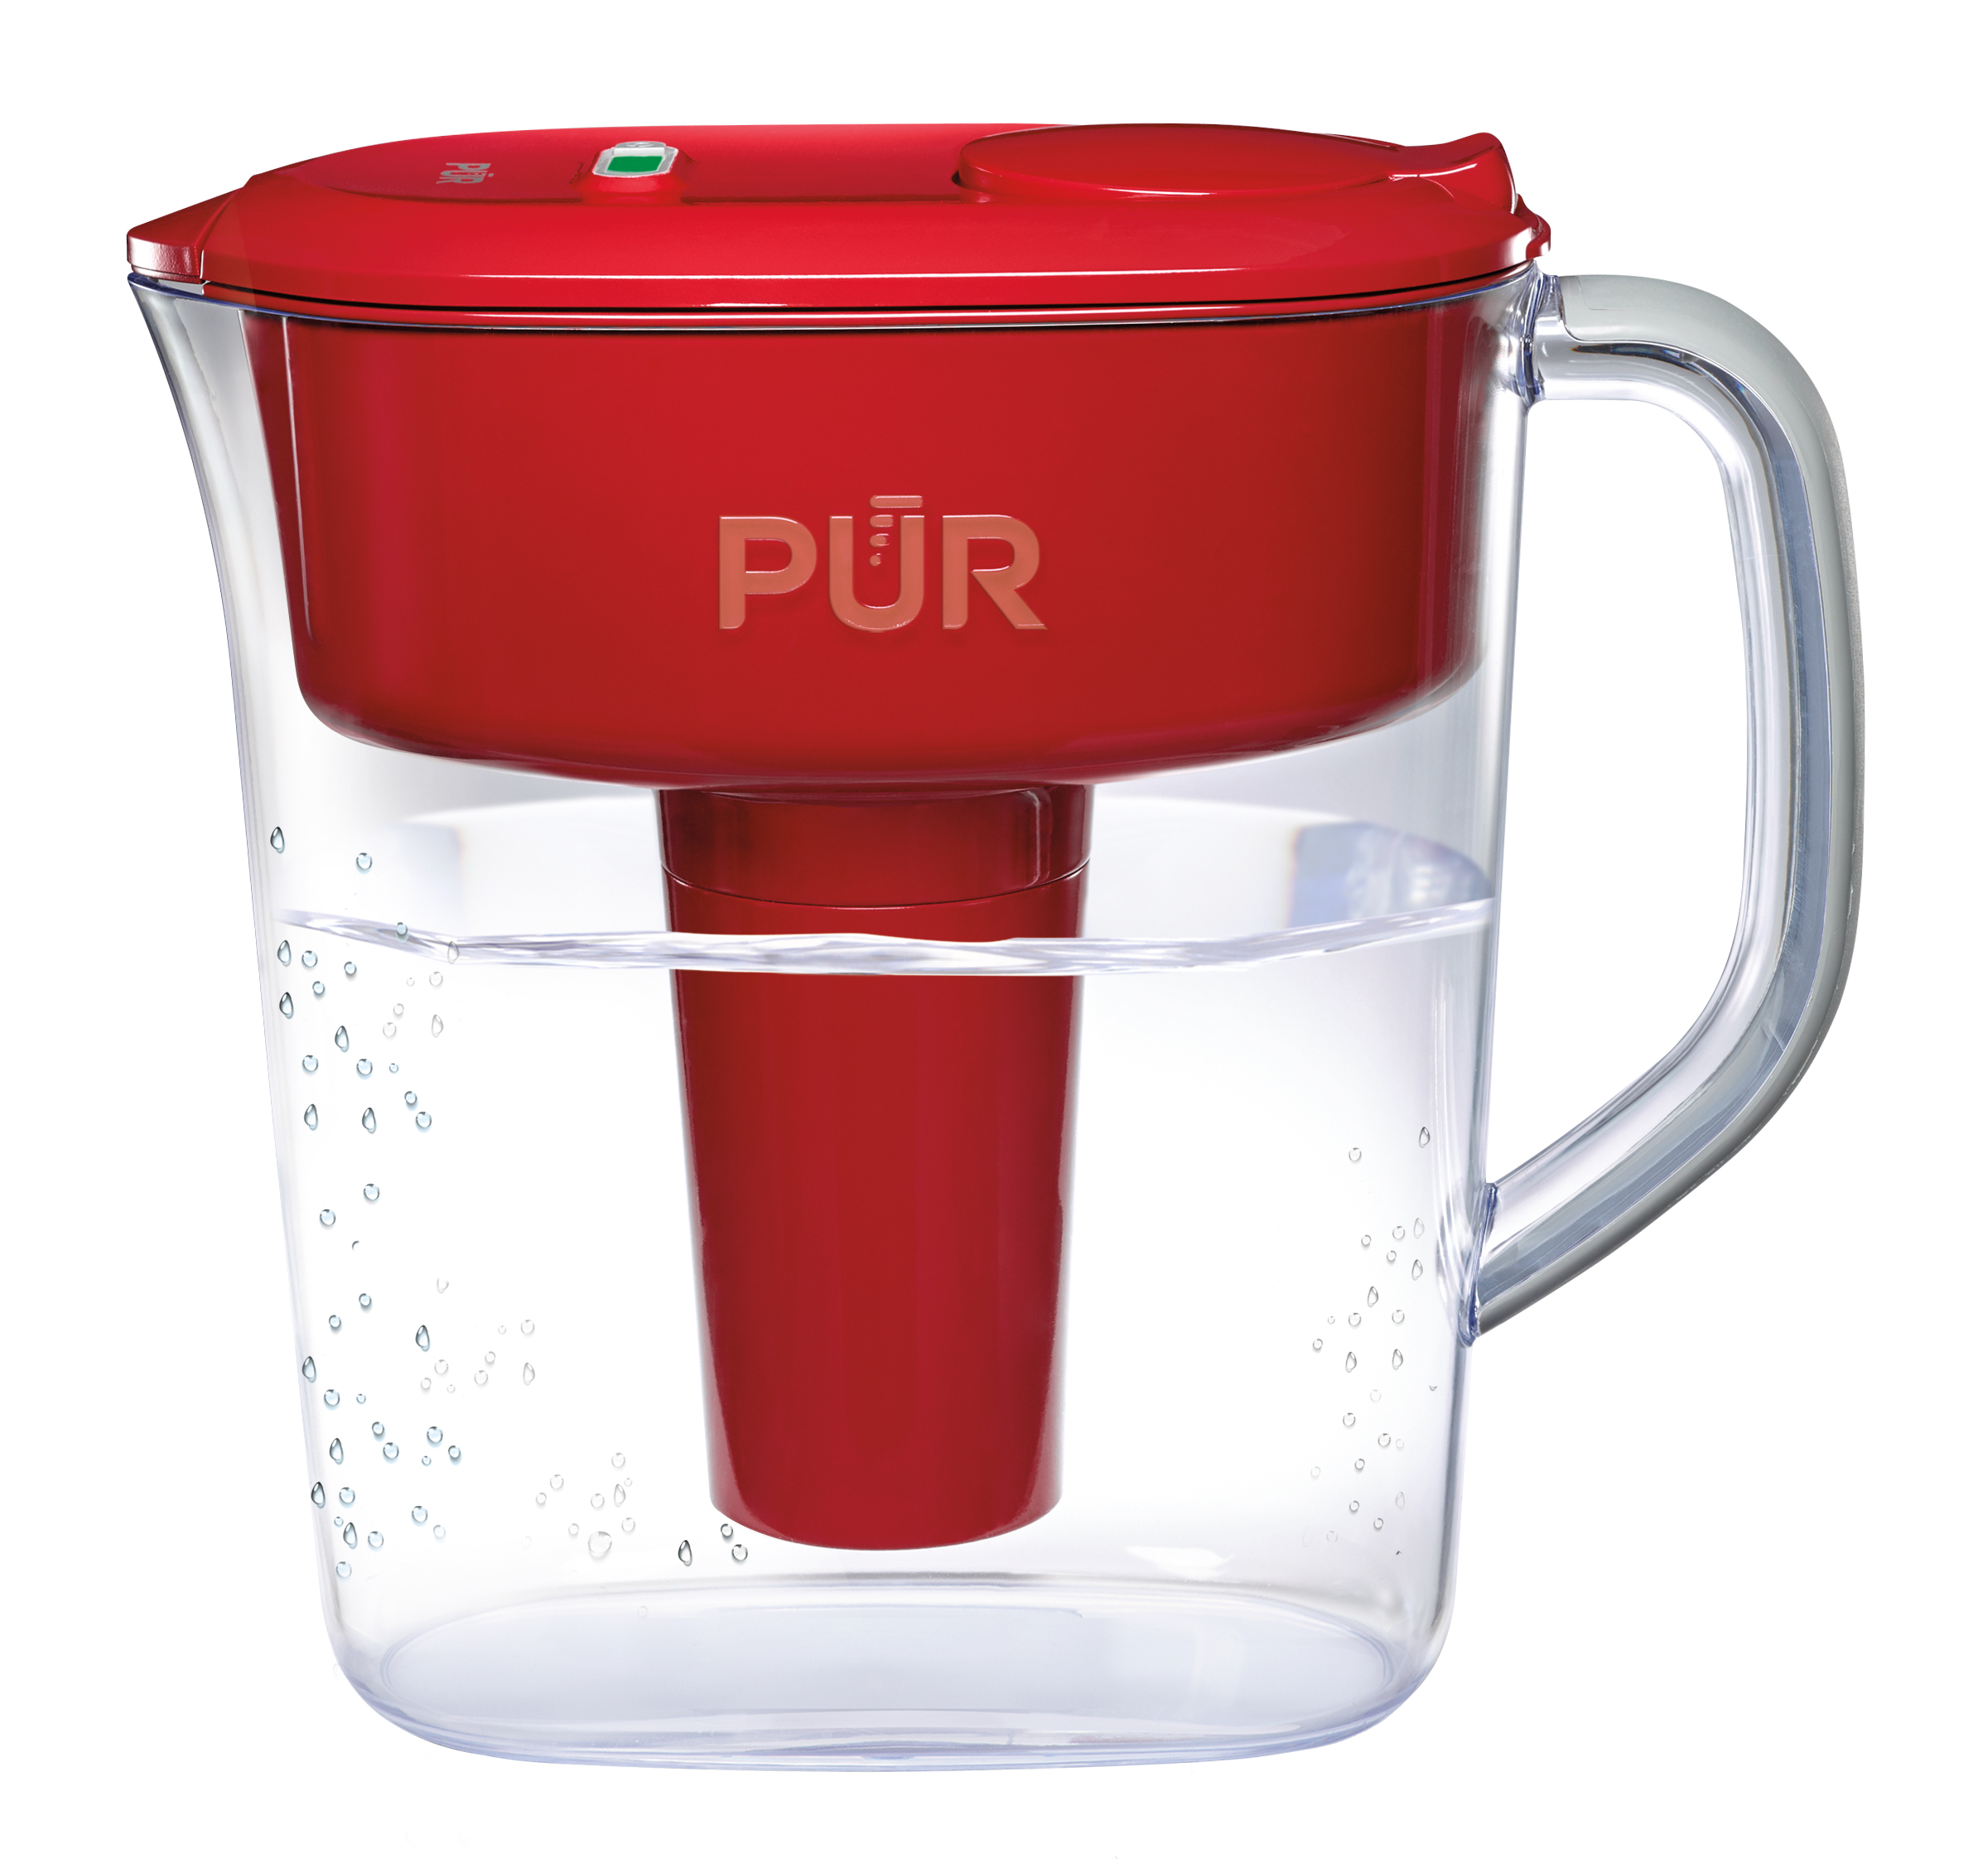 PUR Ultimate Pitcher Water Filter with Lead Reduction 11 Cup, PPT111R, Red